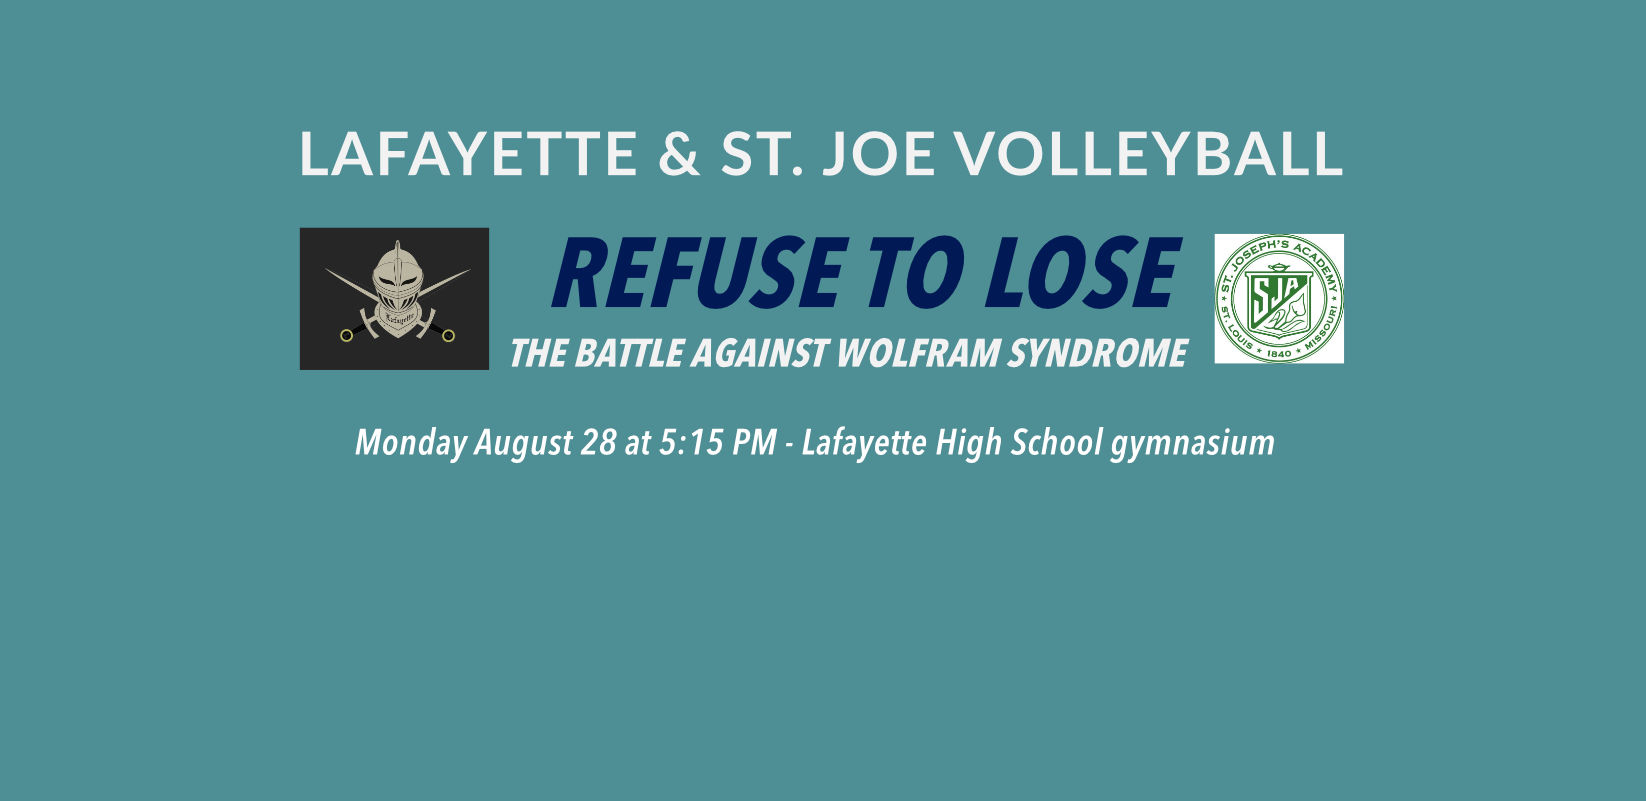 LHS_Volleyball_FundraiserGame-RefuseToLose-August-28